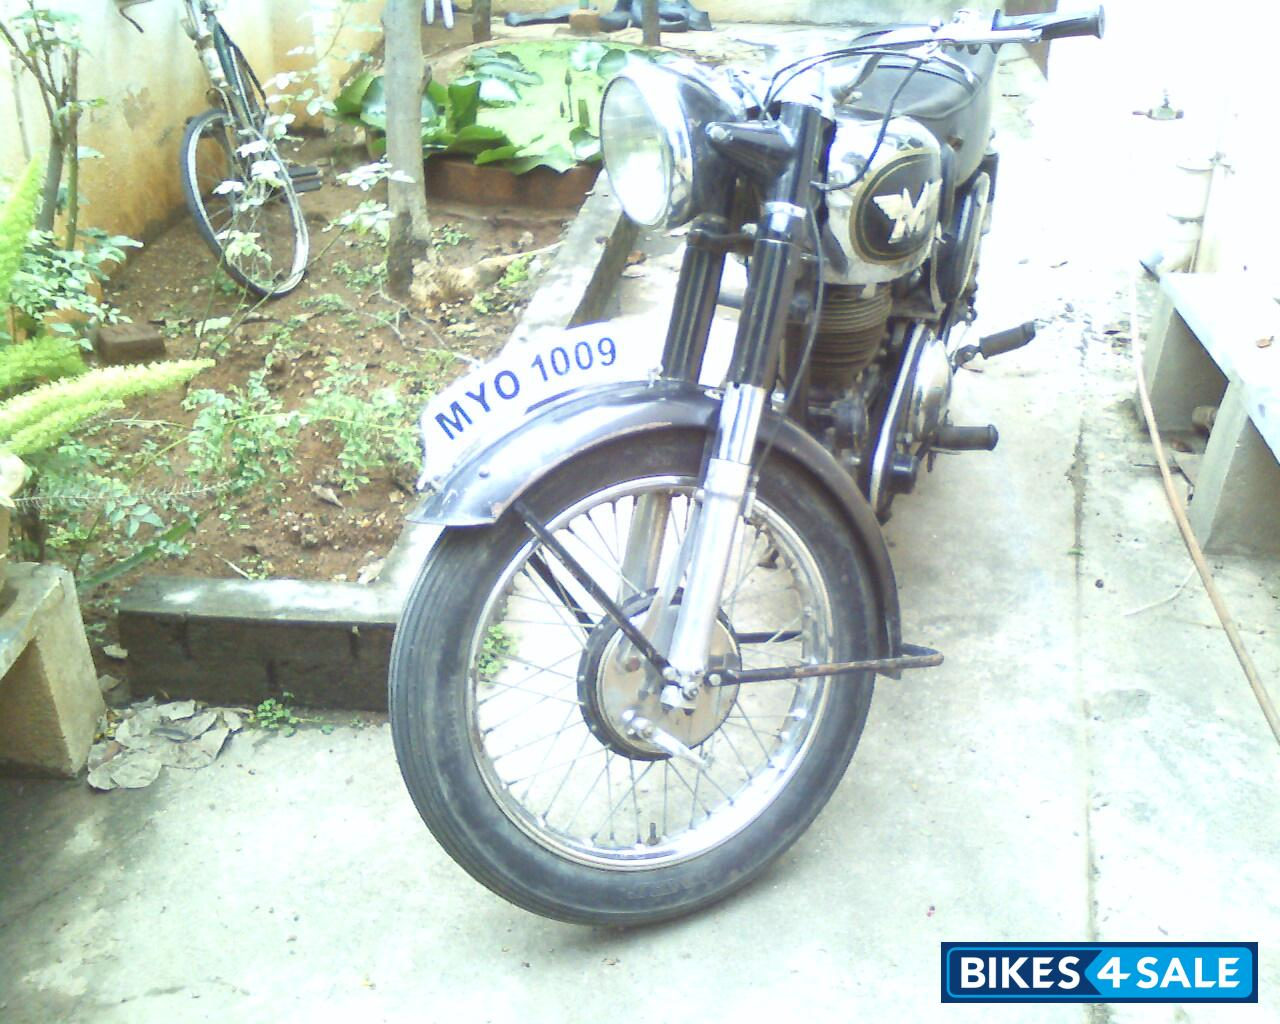 2nd hand cycles for sale in bangalore dating - online dating for people over 60